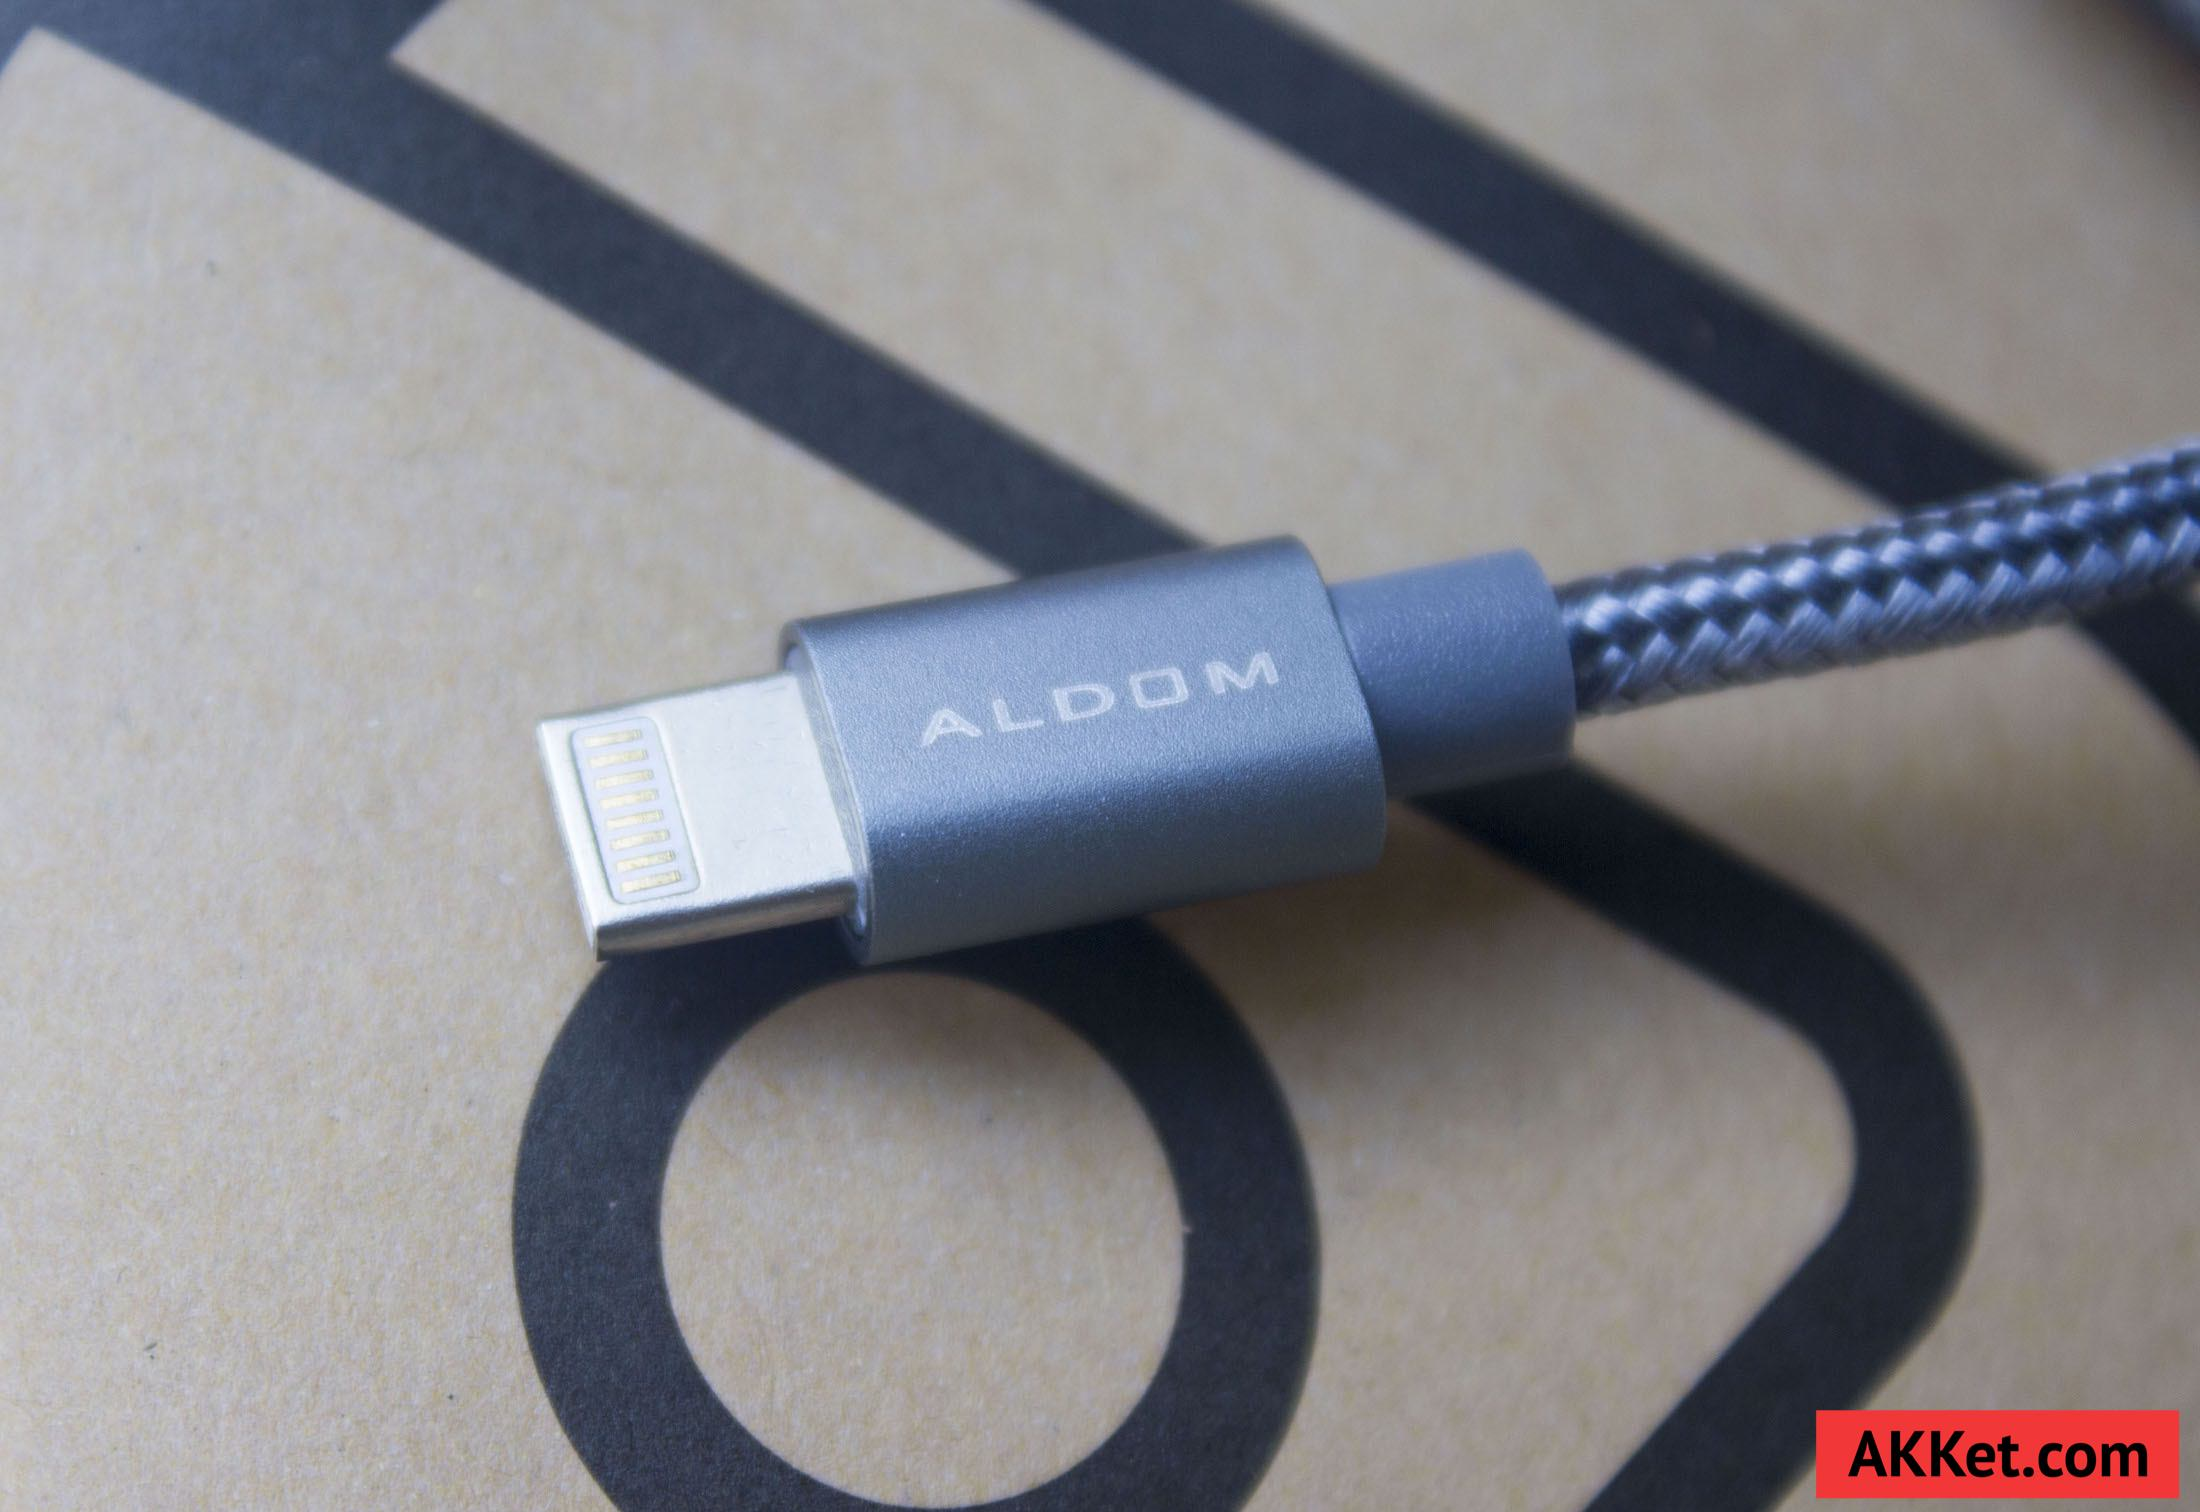 ALDOM Nylon Cable Lightning microUSB 7